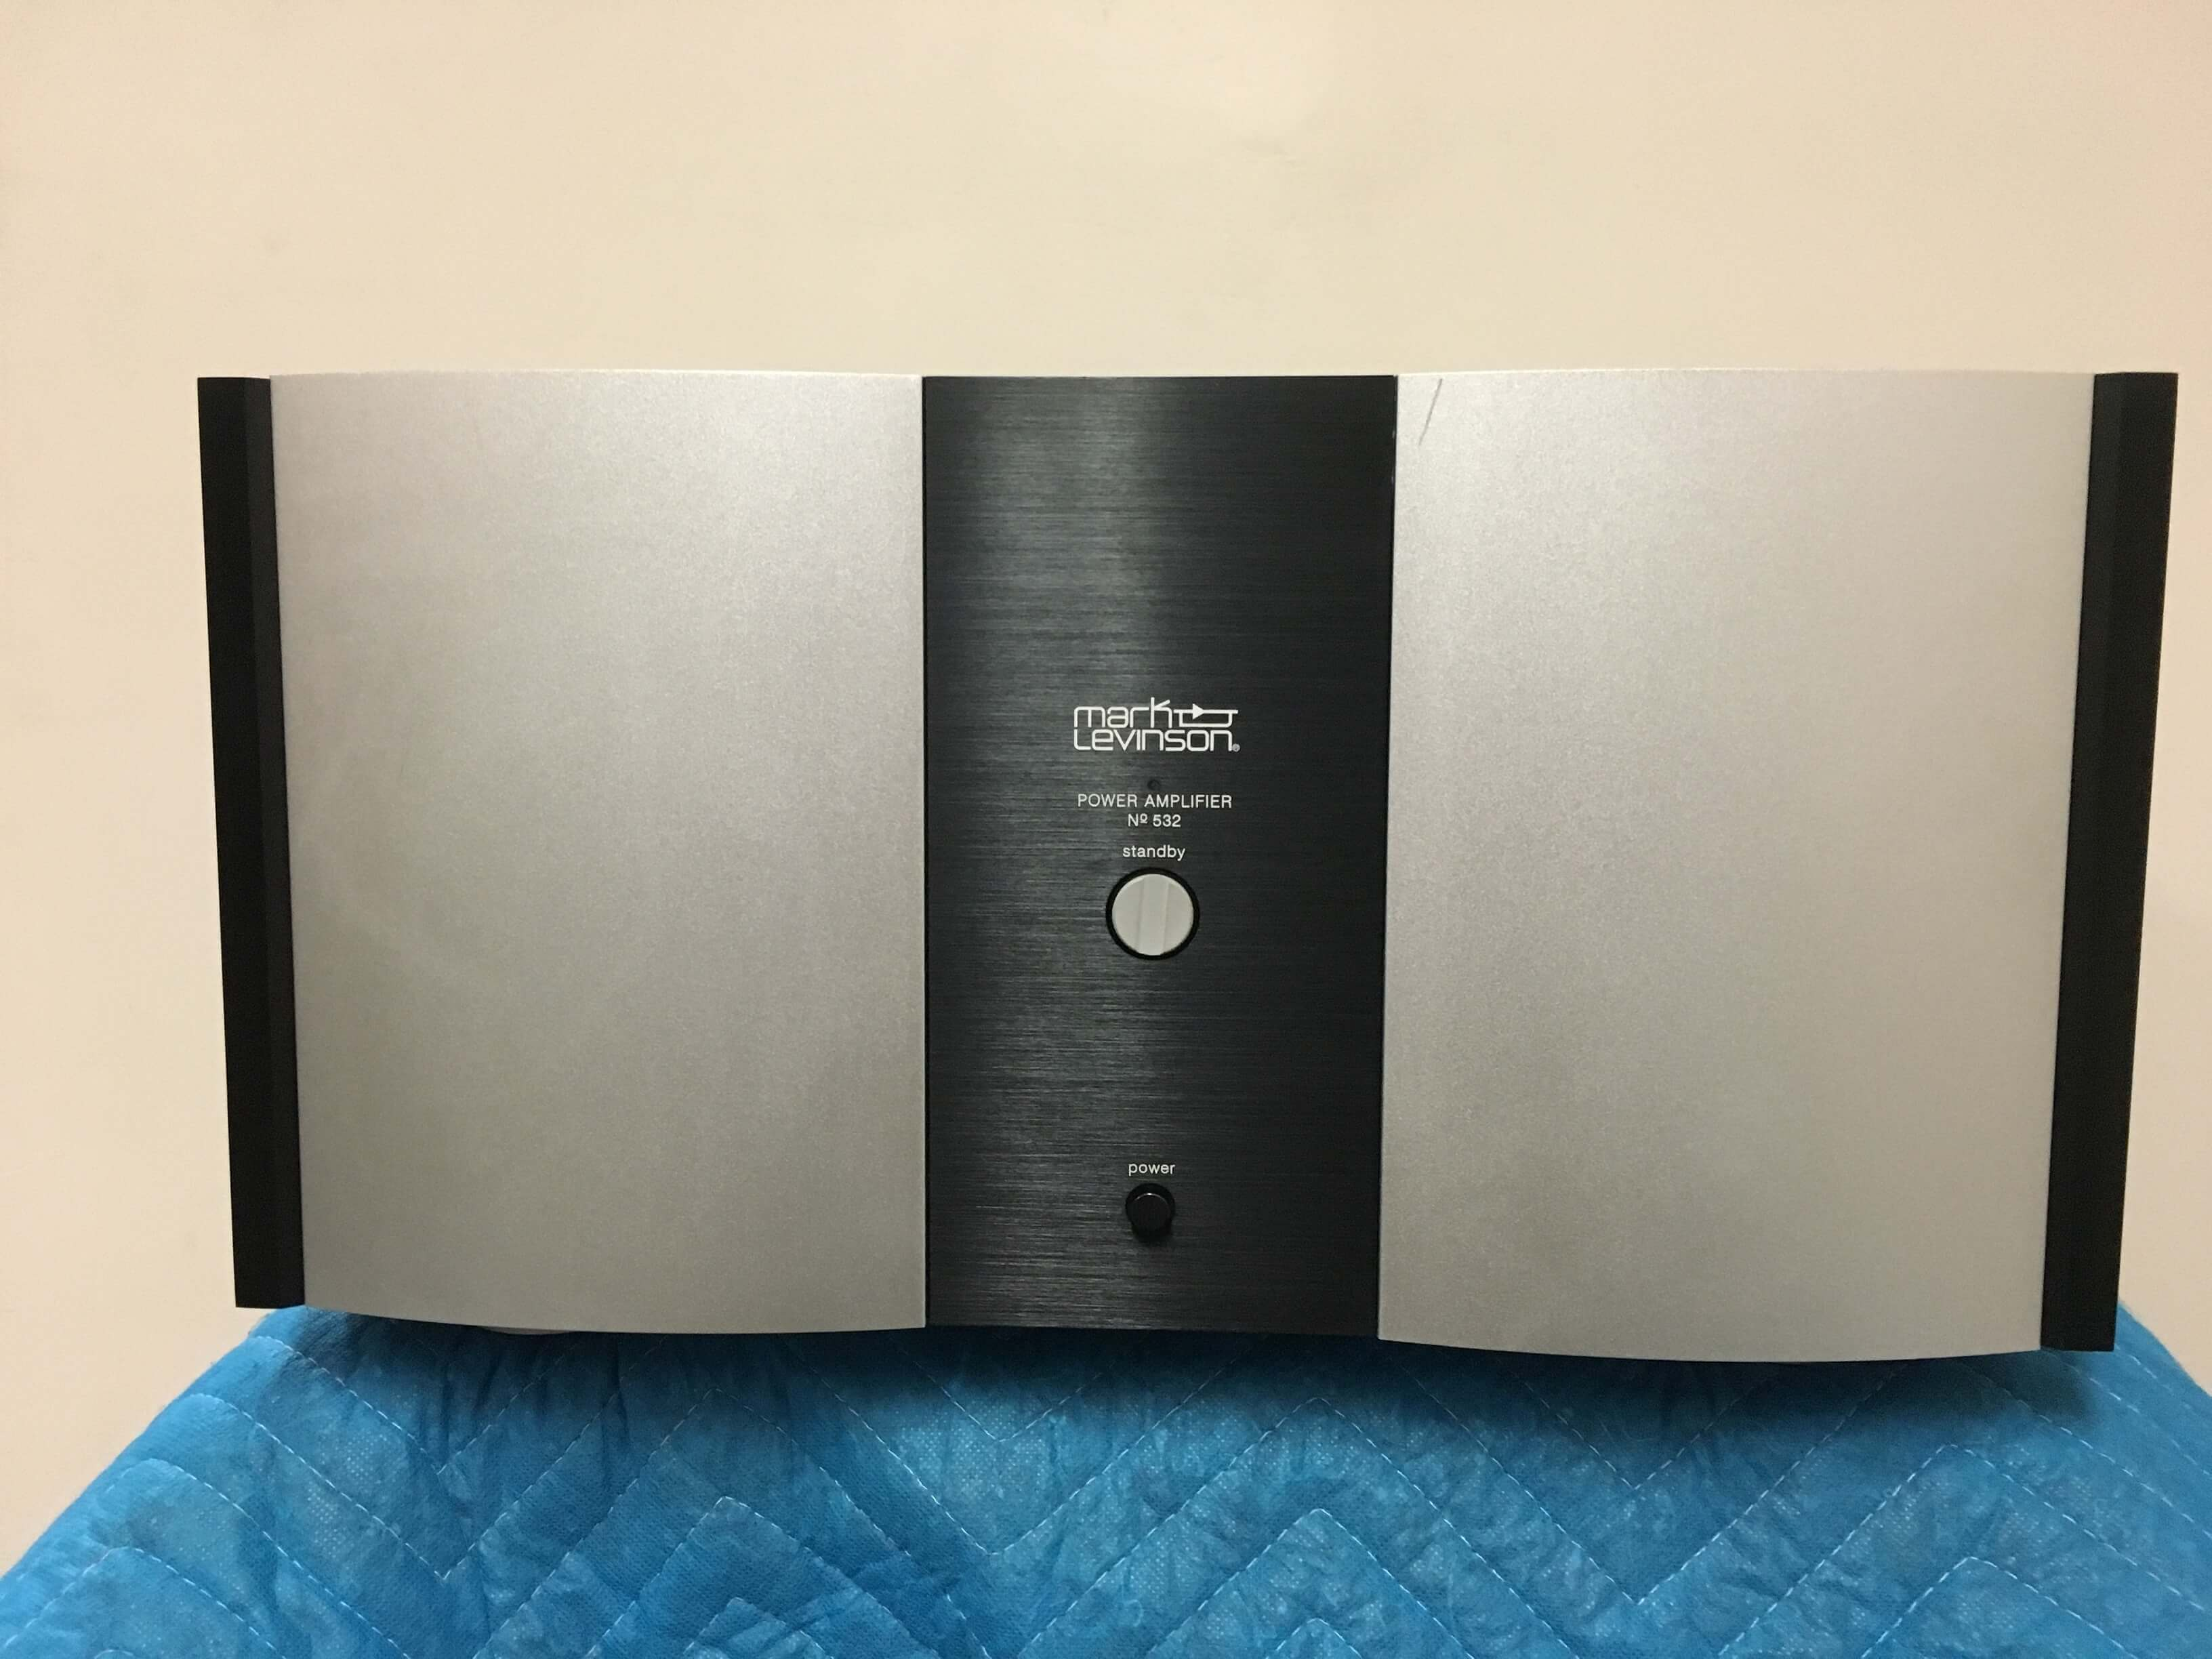 Mark Levinson 532 power amplifier